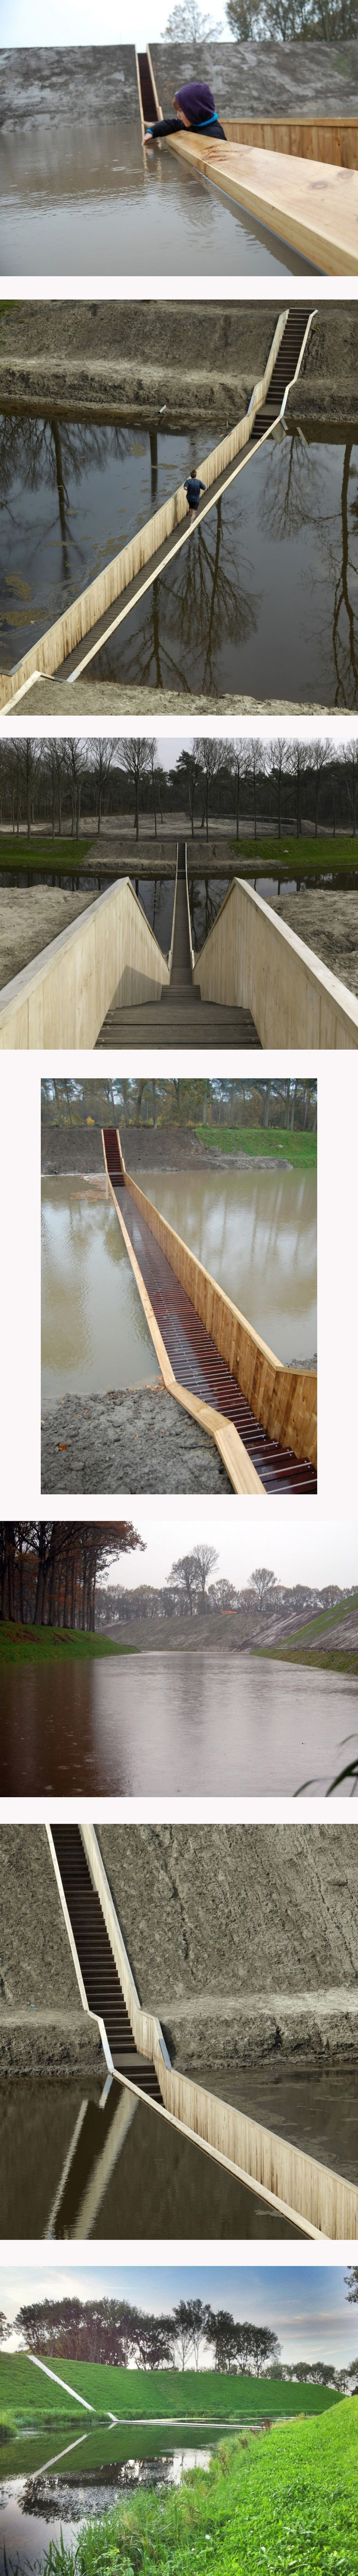 Moses Bridge / RO Architecten    Architects: RO Architecten  Location: Halsteren, The Netherlands  Client: Municipality of Bergen op Zoom  Material used: Accoya wood  Project Area: 50 sqm  Photographs: Courtesy of RO Architecten    http://www.archdaily.com/184921/moses-bridge-road-architecten/